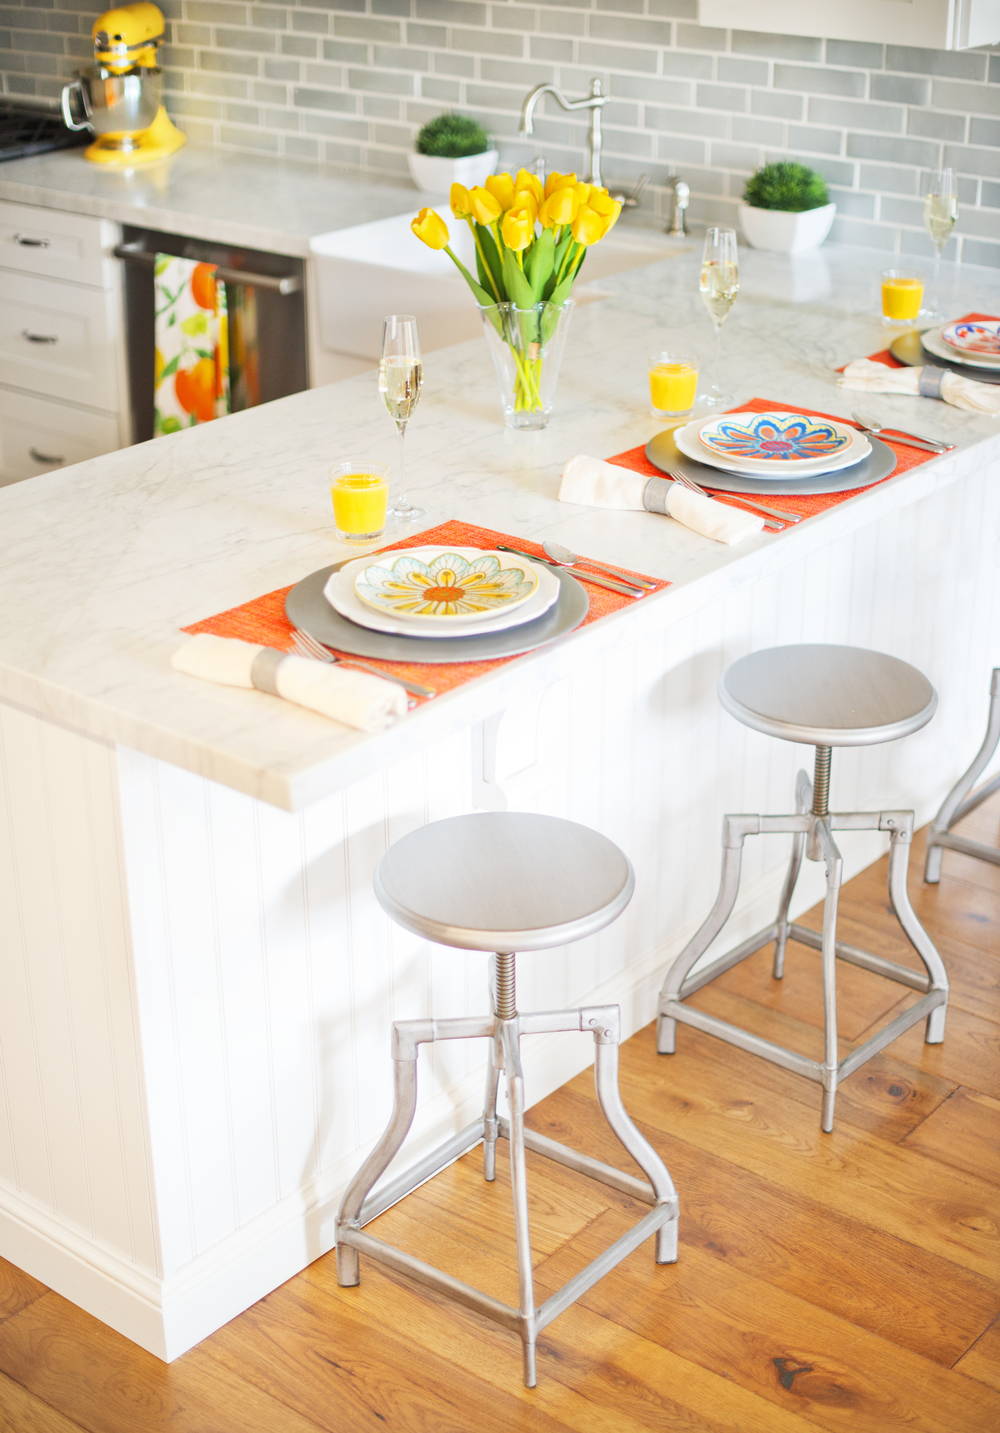 Sun-Kissed Spring Breakfast~ My Splendid Living teamed up with Crate & Barrel to kiss this white kitchen with bold pops of Spring color.